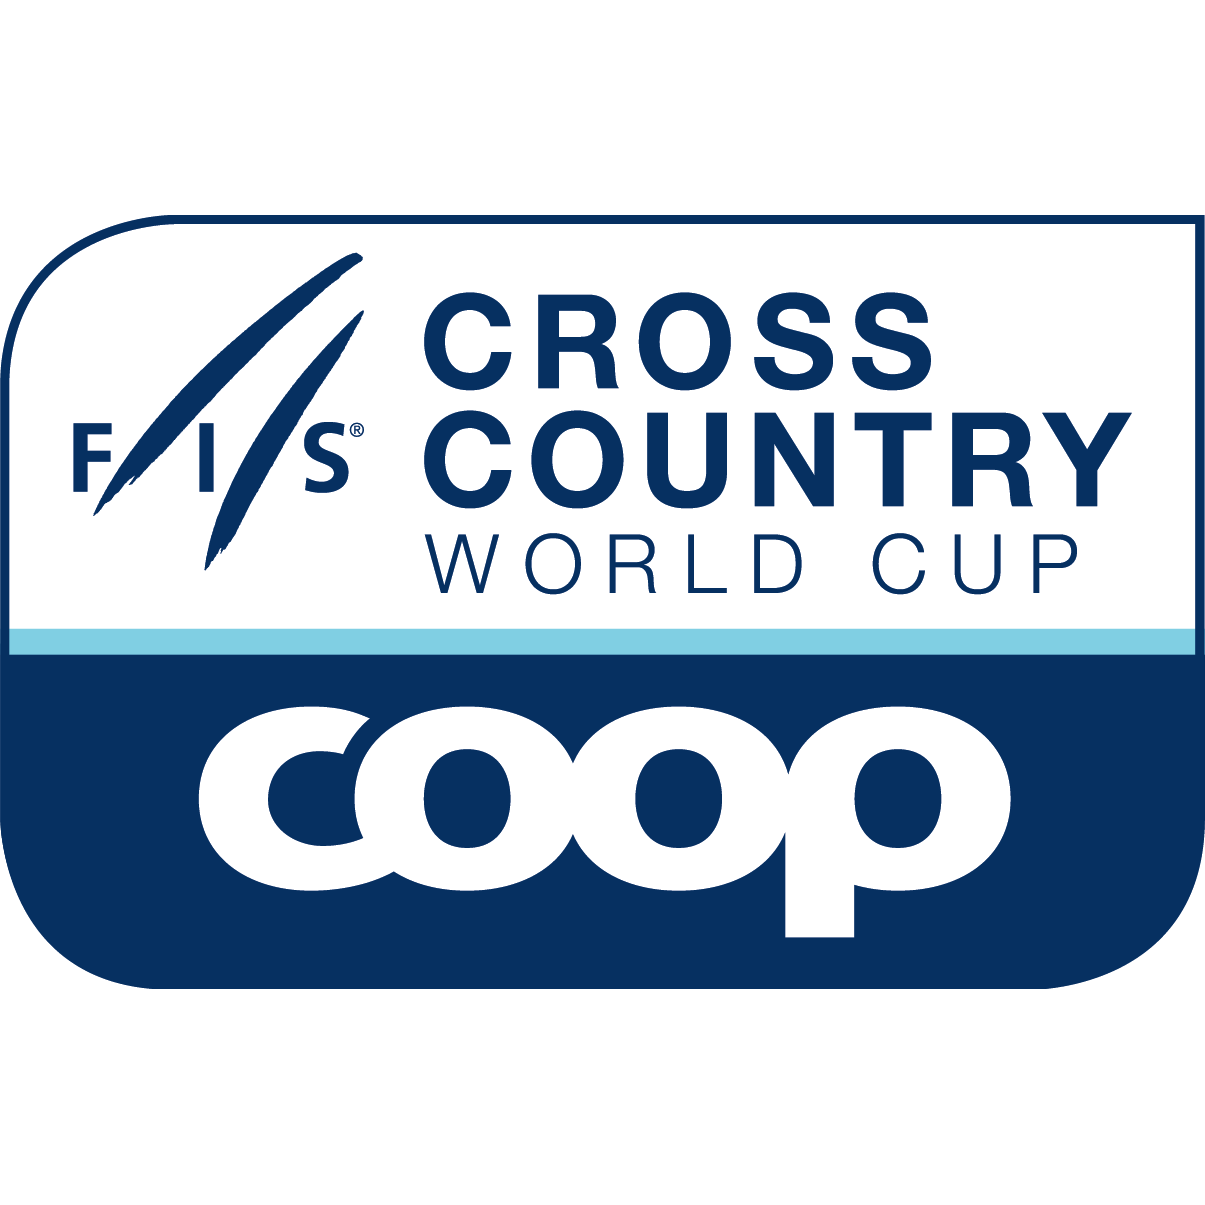 2014 FIS Cross Country World Cup